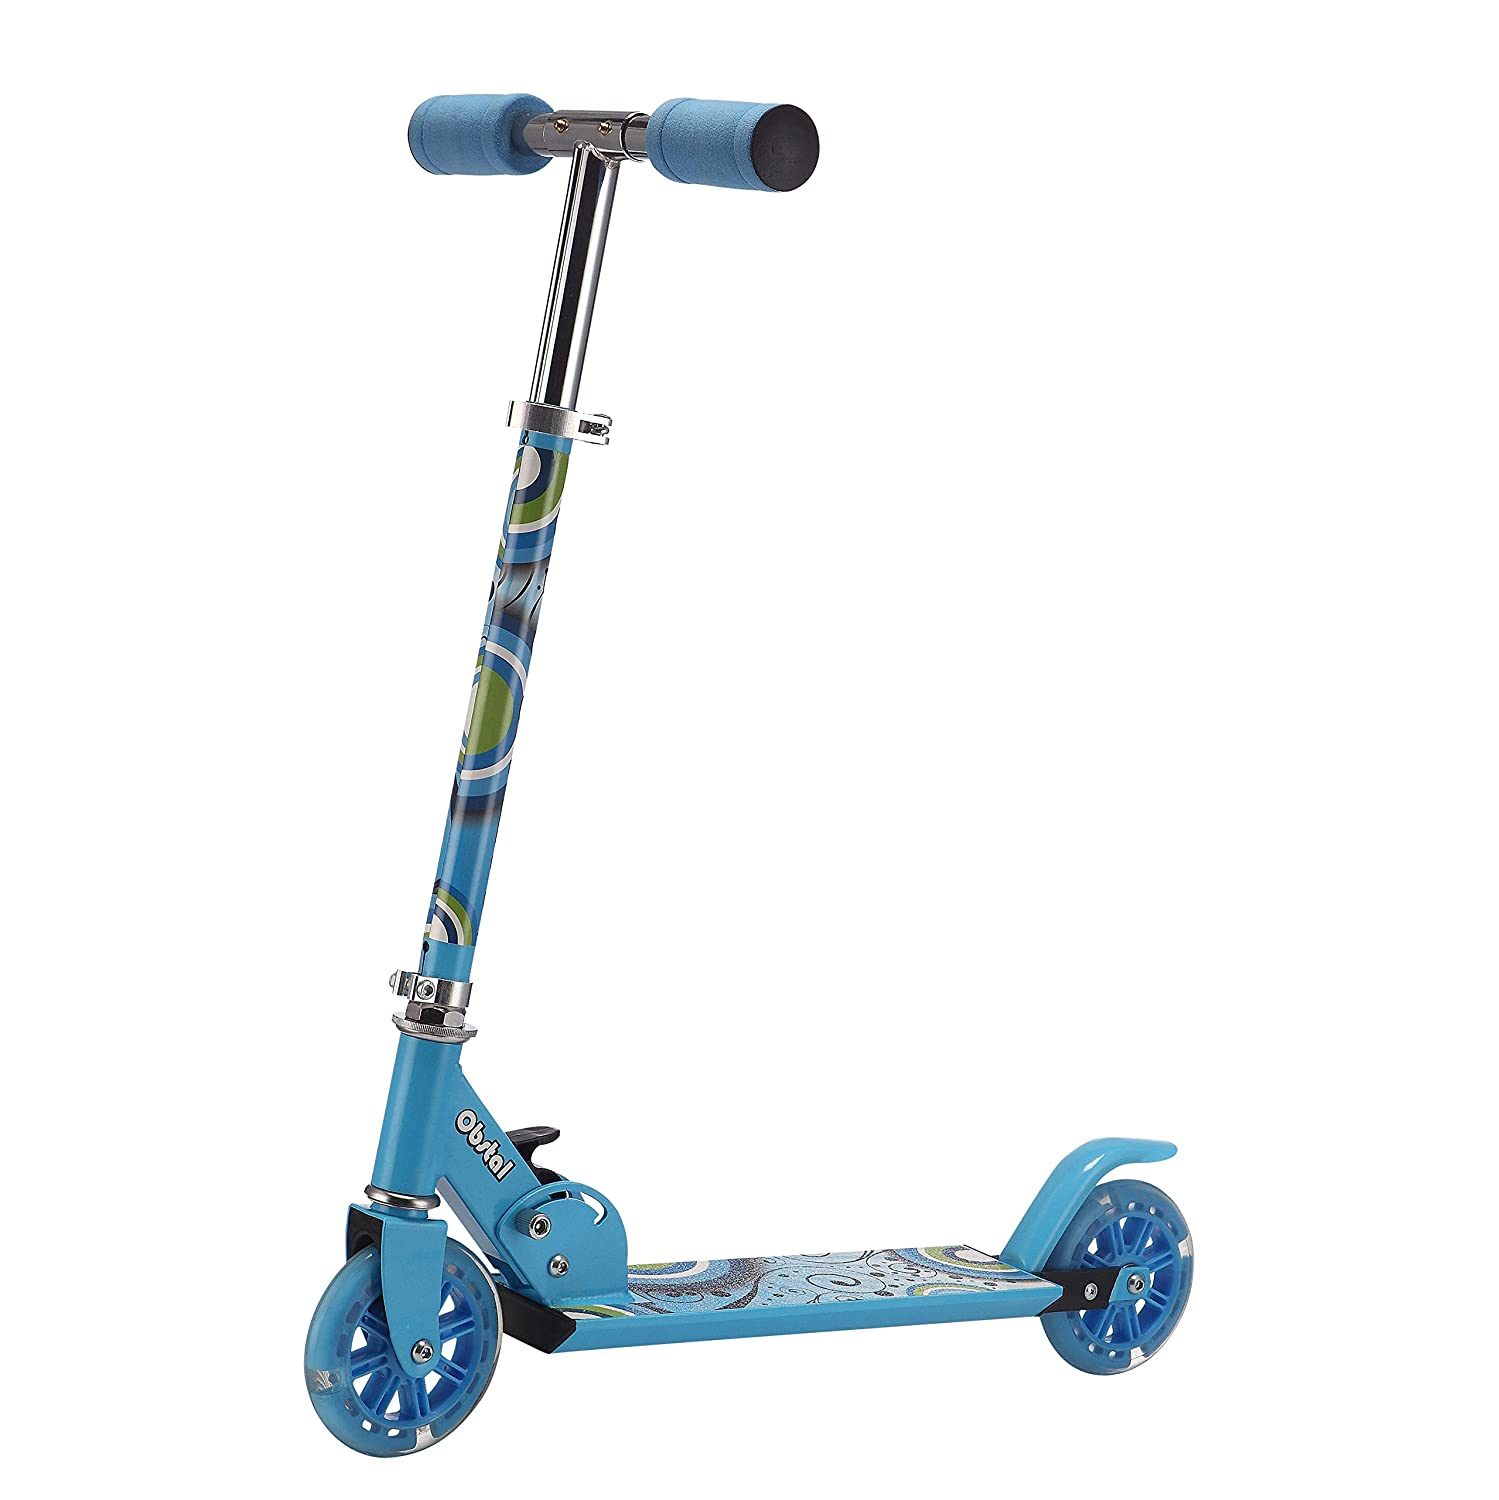 Obstal Kick Scooter for Kids Double /& Three Wheels Adjustable Height Folding T-bar with Flashing Wheels